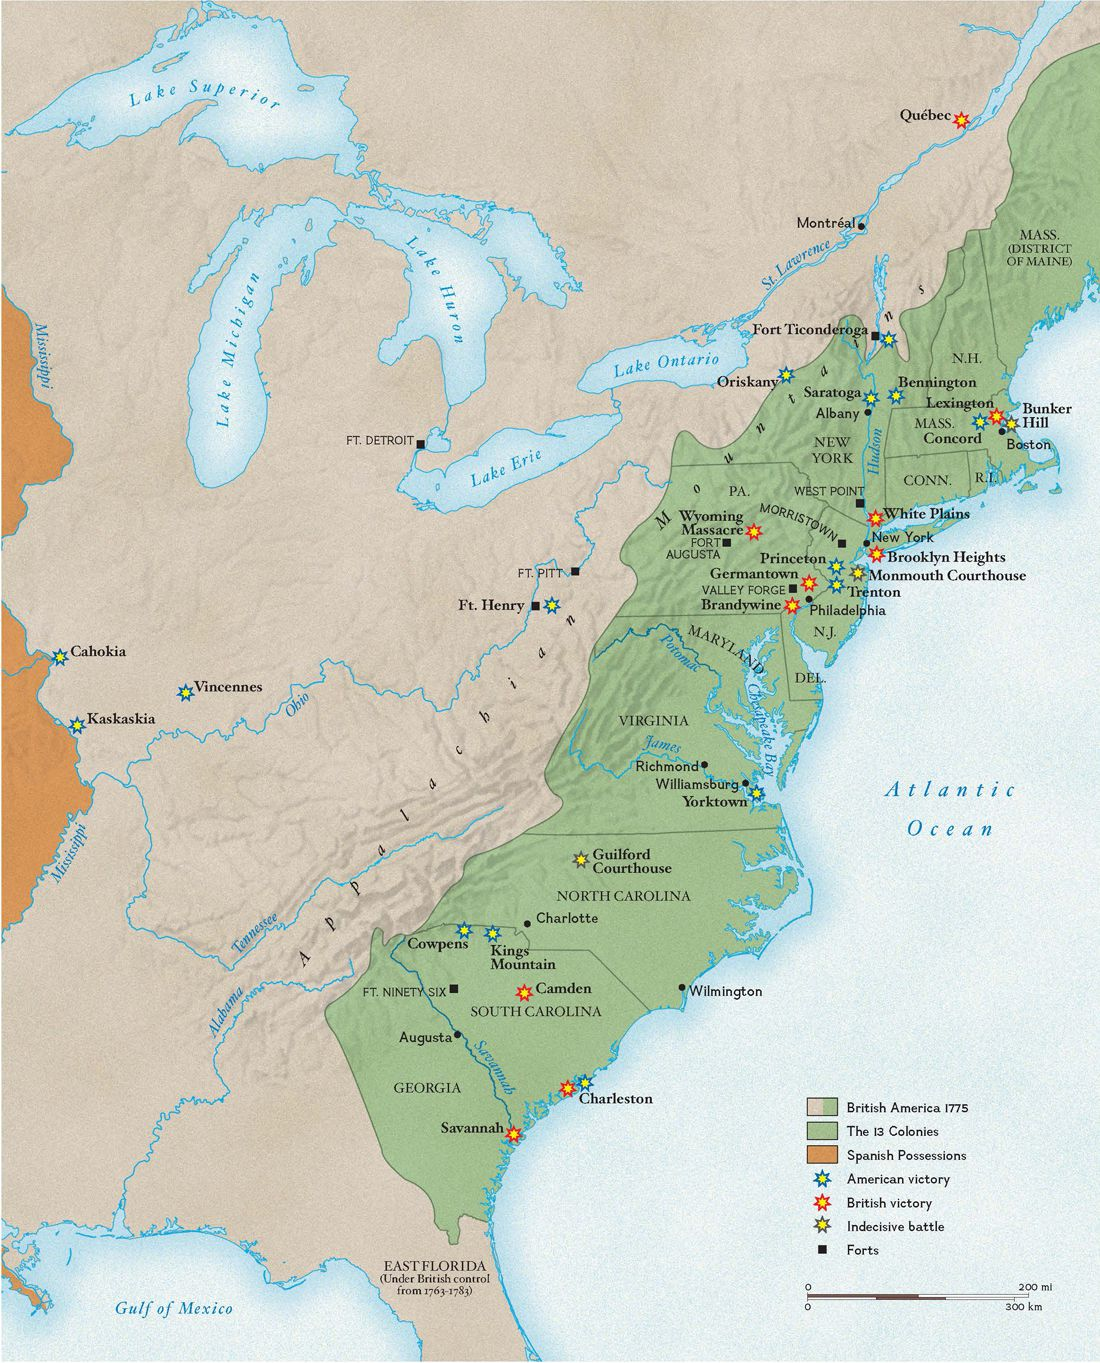 Revolutionary War Battles National Geographic Society - Us-history-map-activities-answer-key-american-revolution